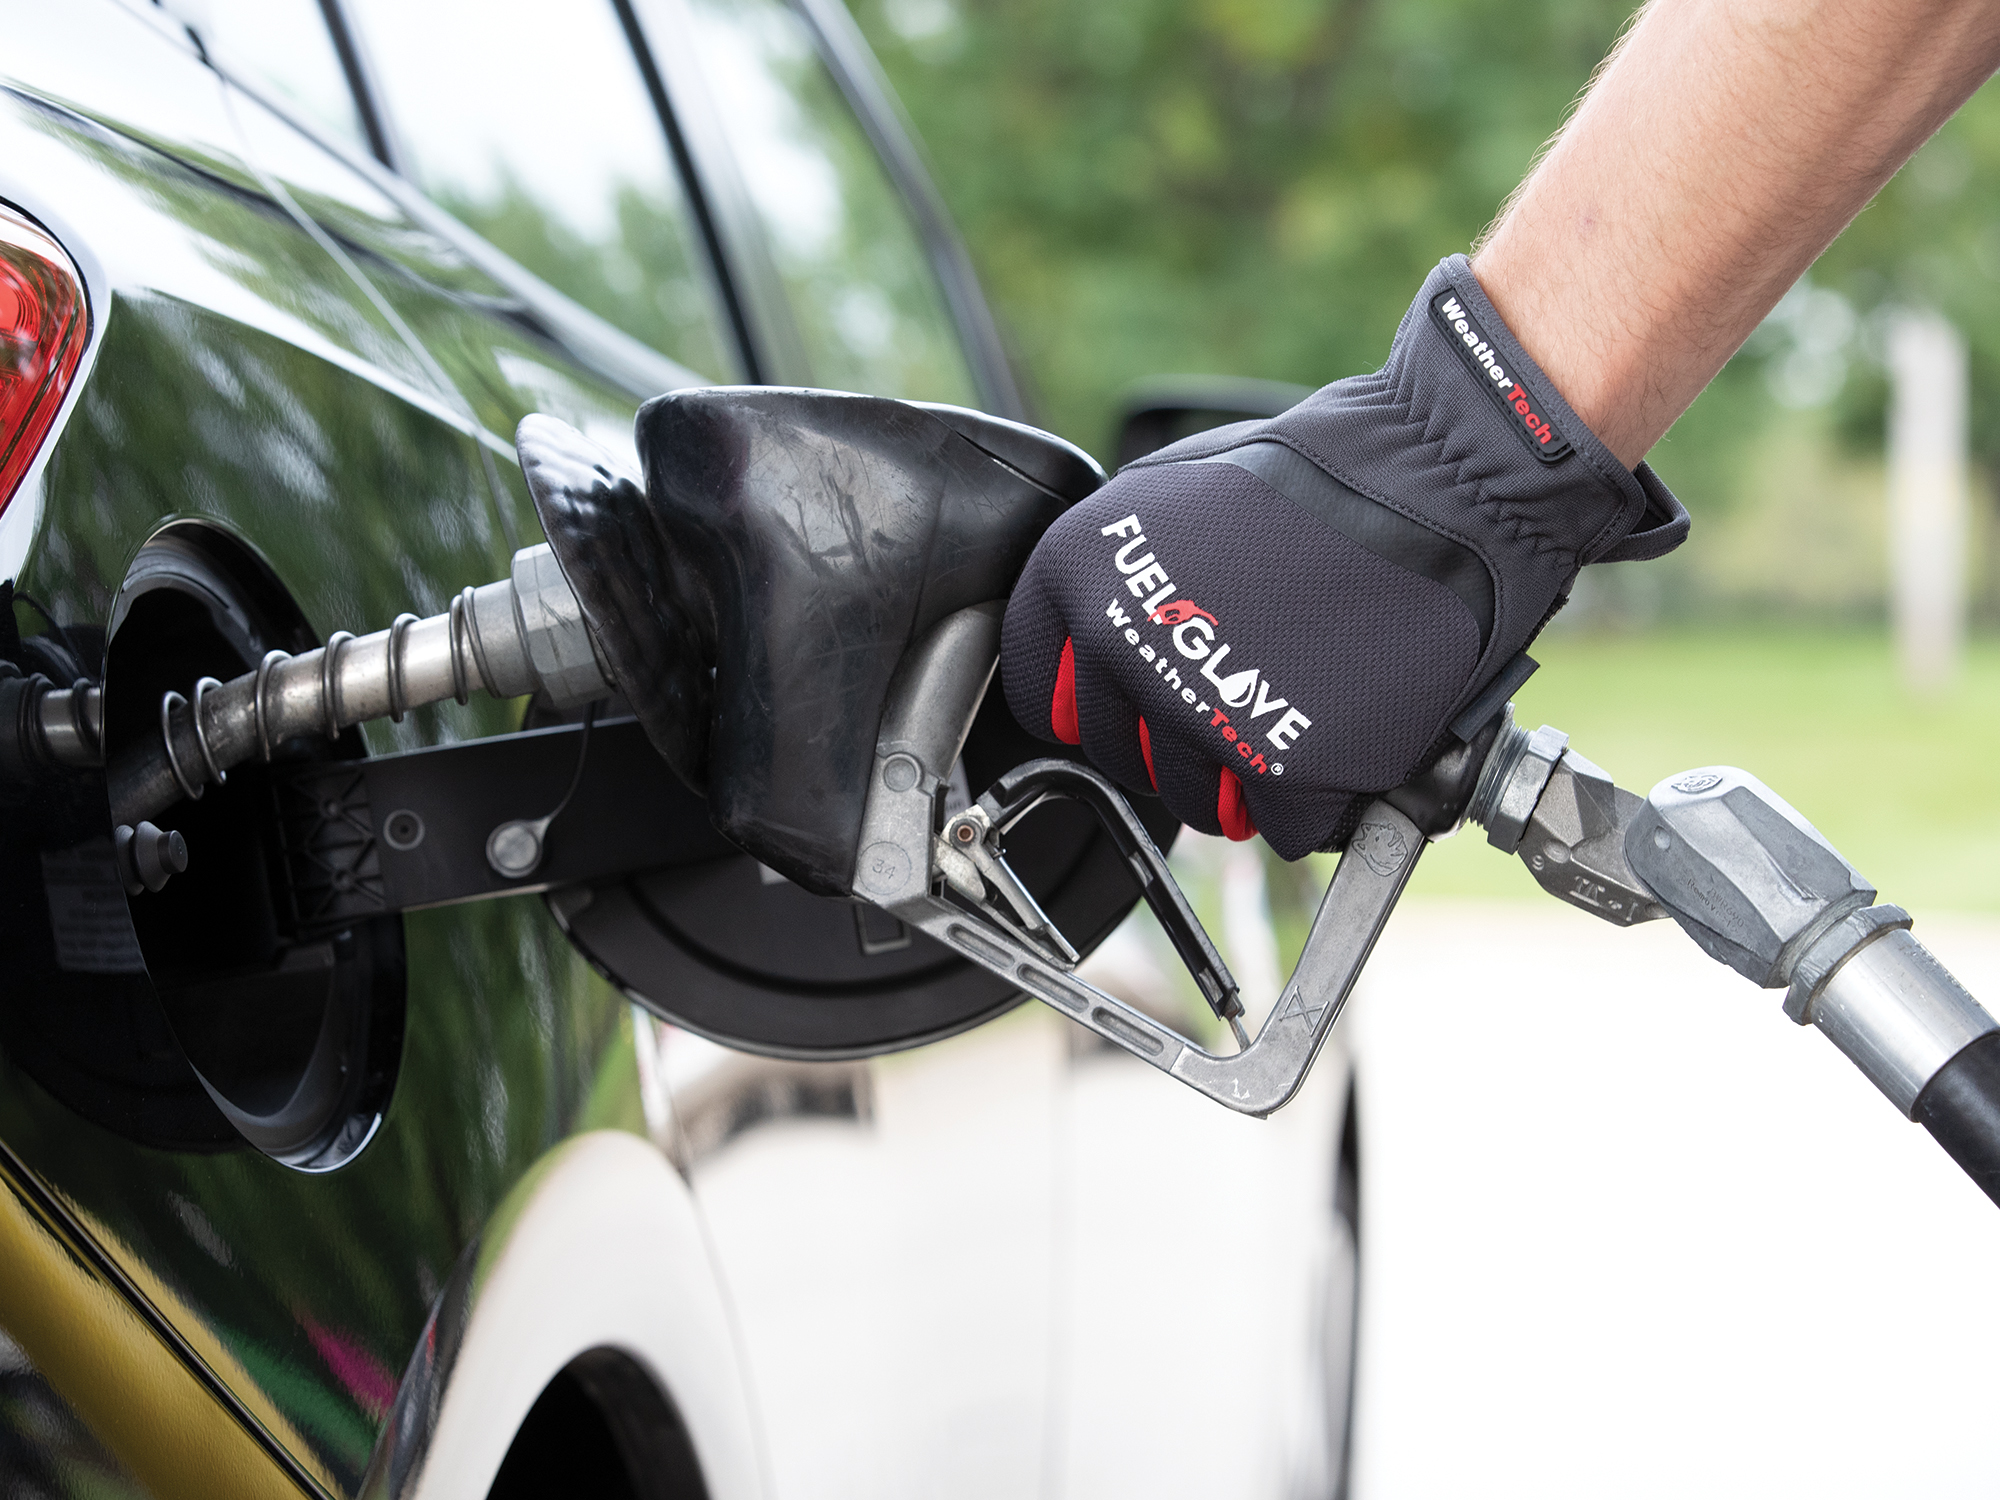 FuelGlove_In_Use_Hand_On_Pump